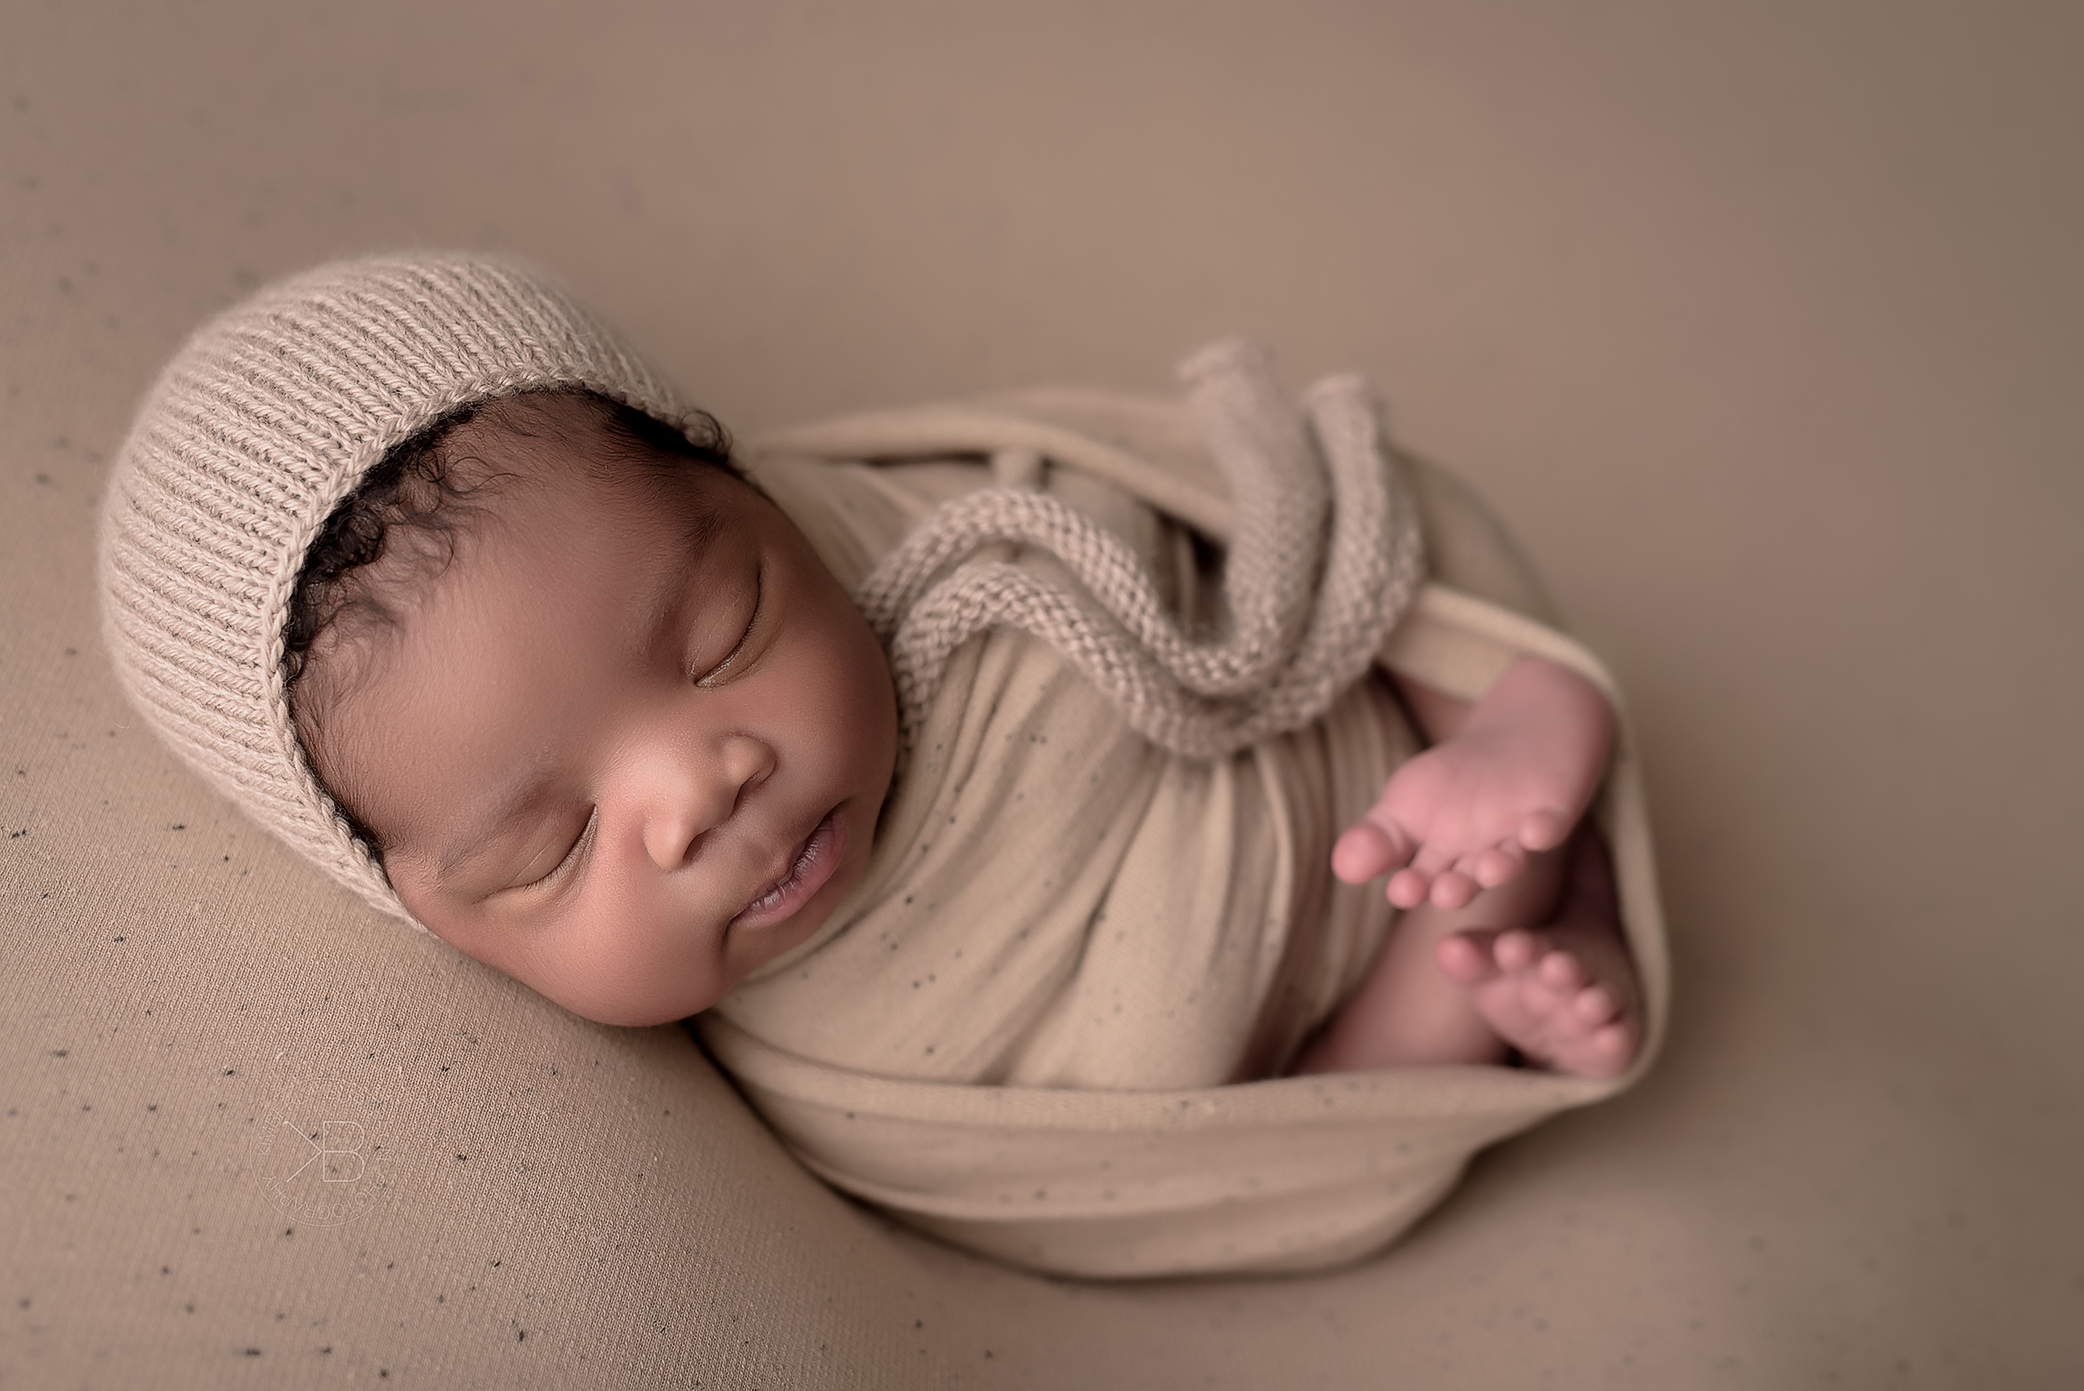 baby in neutral textures. Houston newborn phtoography